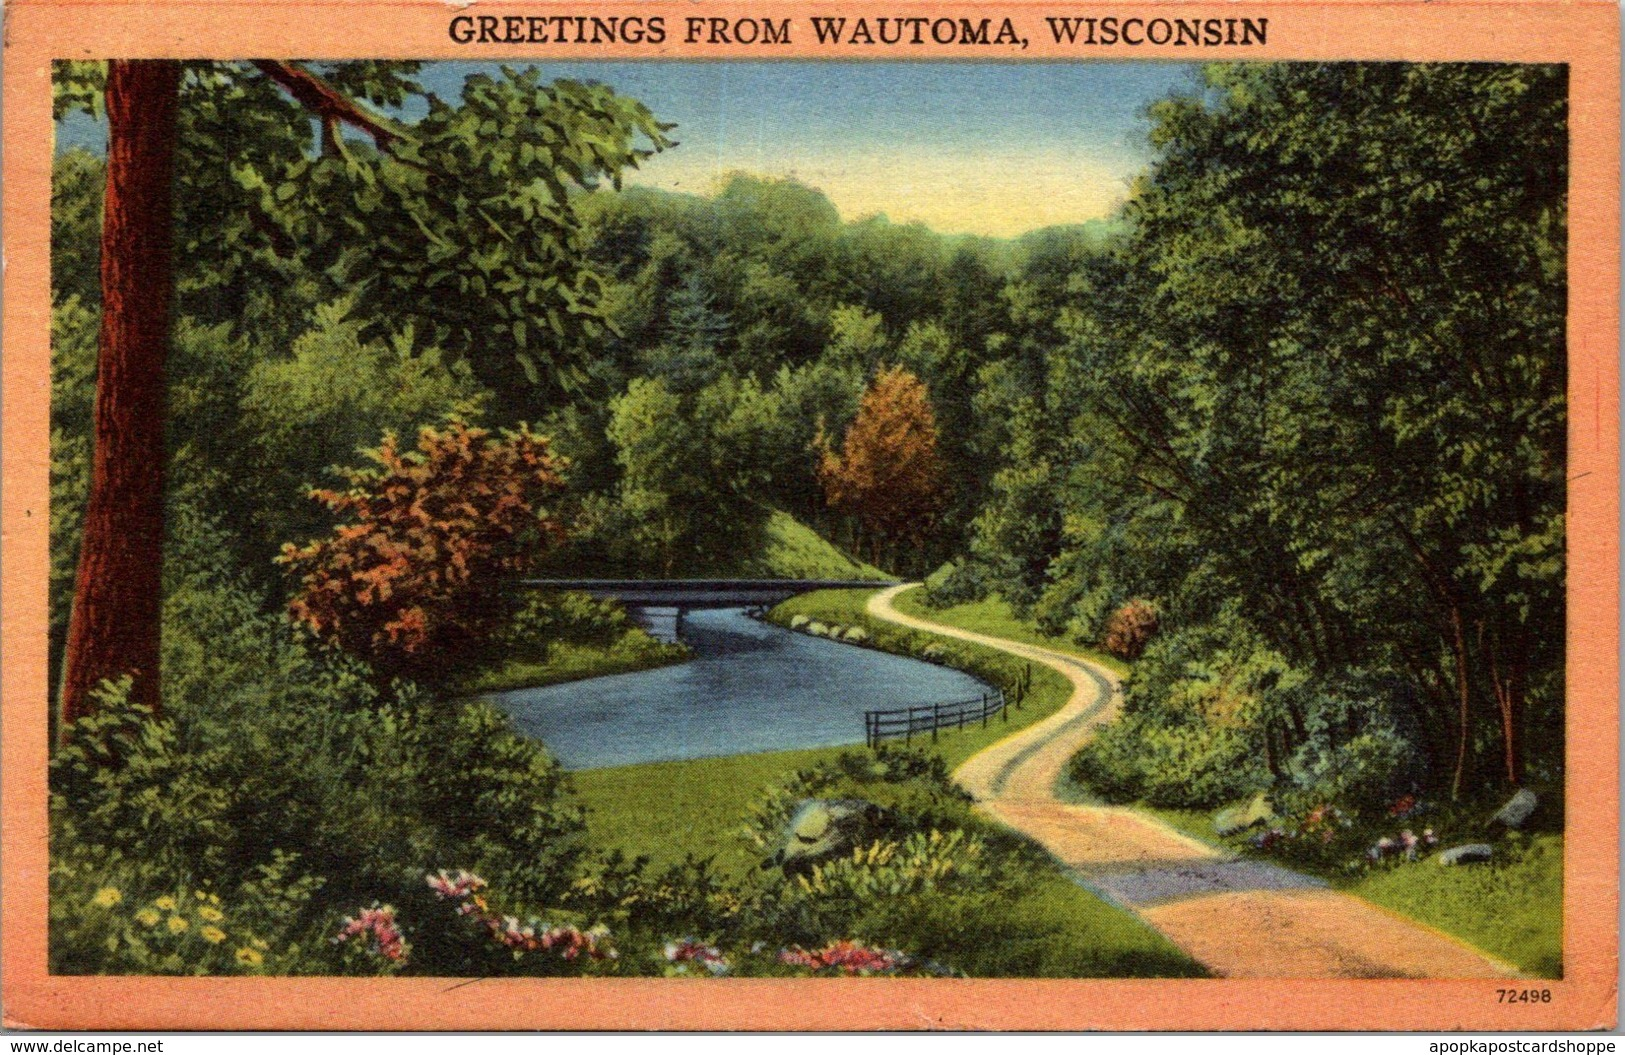 Wisconsin Greetings From Wautoma 1951